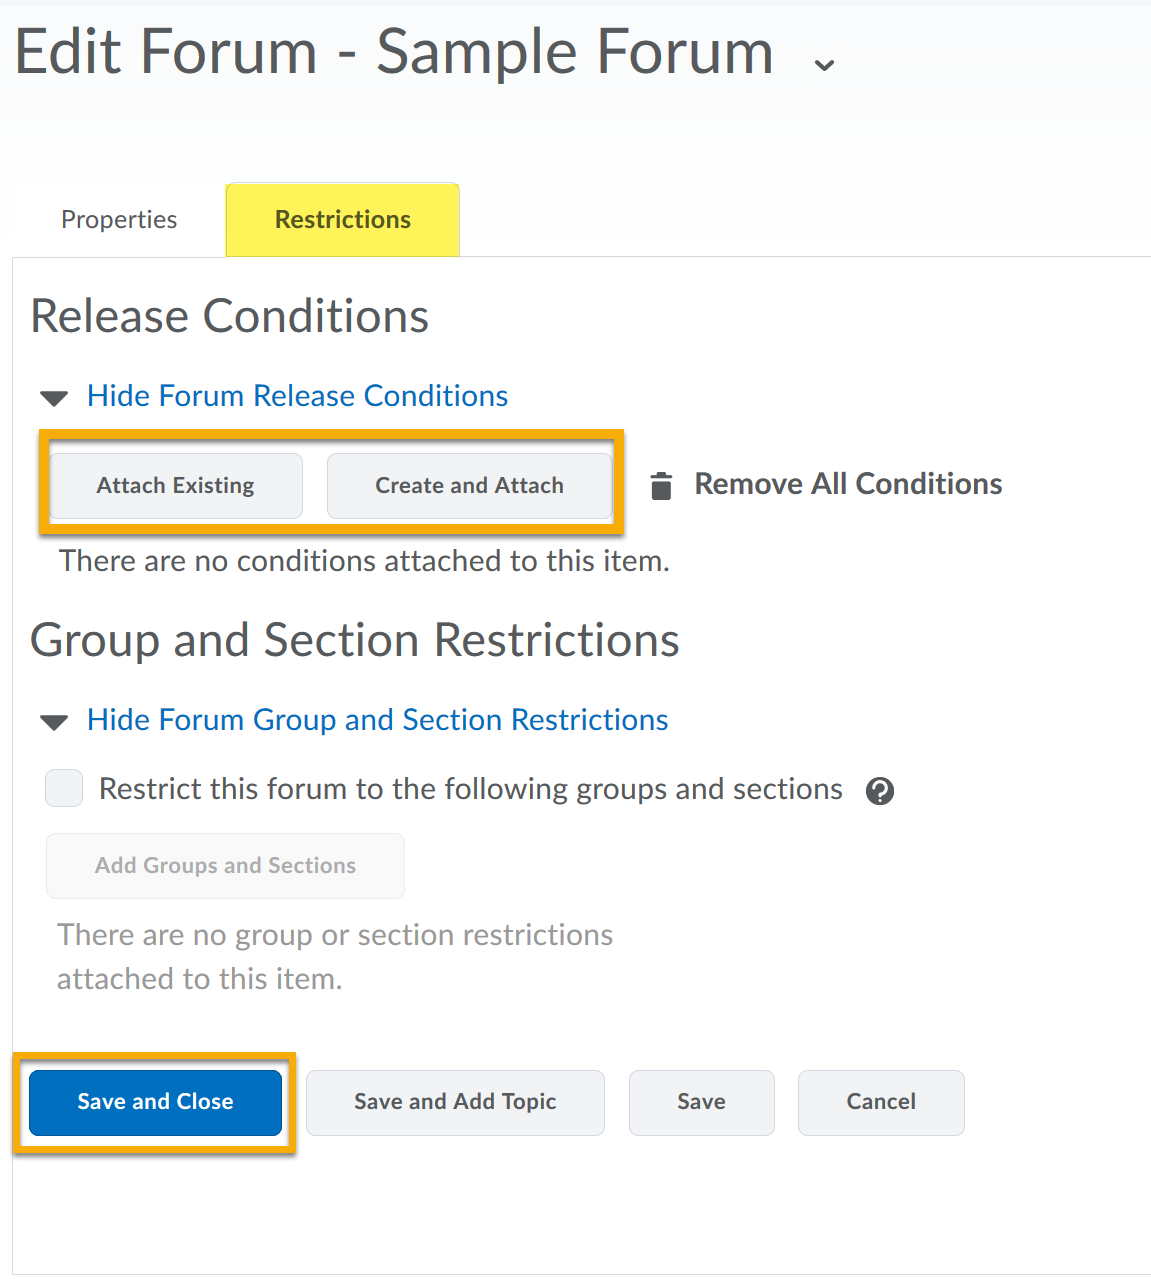 From the Restrictions tab Attach Existing, Create and Attach and Save and Close highlighted.